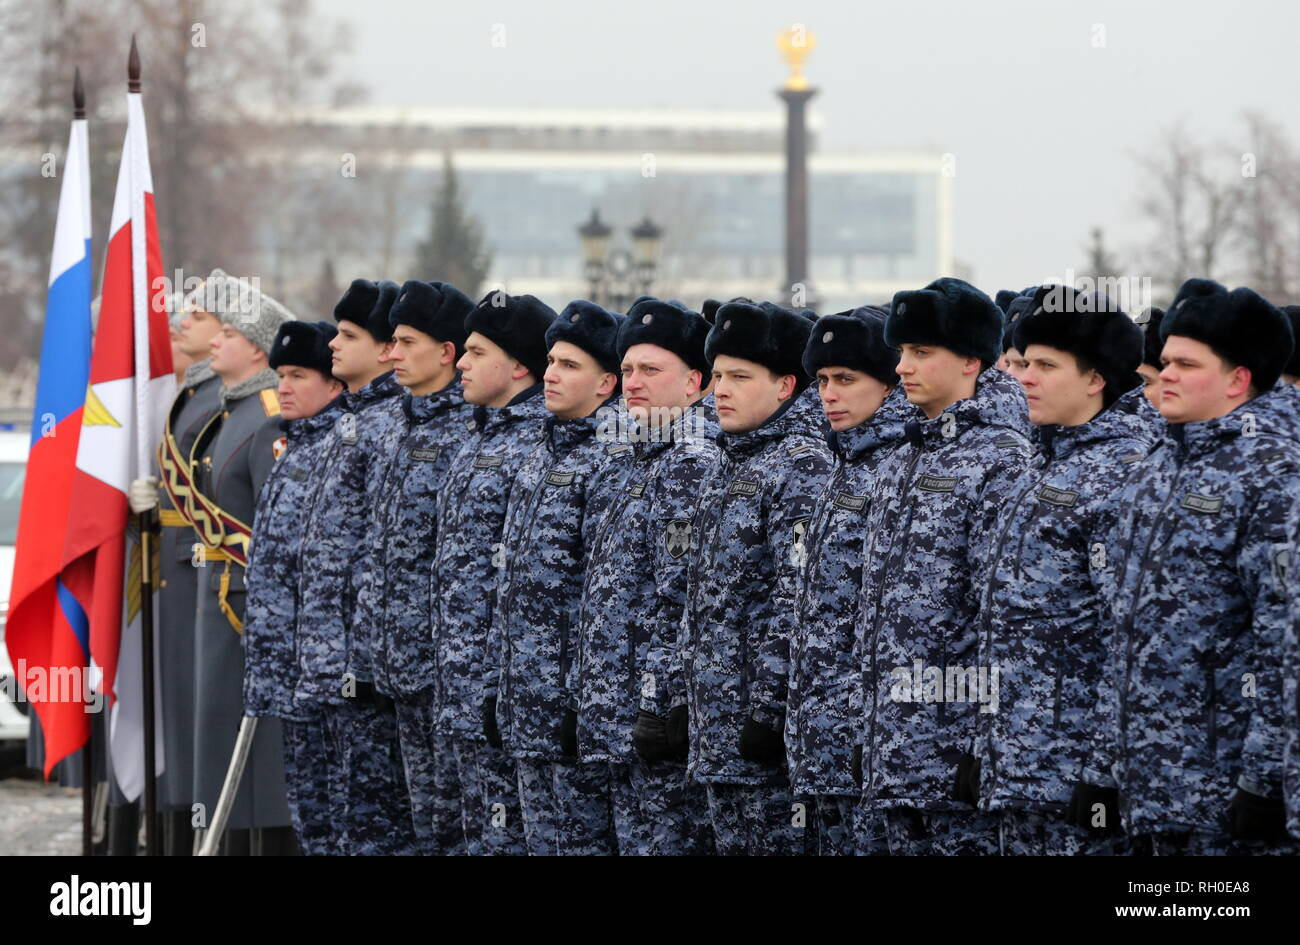 Moscow, Russia. 31st Jan, 2019. MOSCOW, RUSSIA - JANUARY 31, 2019: Servicemen attend a ceremony to give 65 new Renault Logan company cars to independent security service units of the Russian National Guard on Moscow's Poklonnaya Hill. Vladimir Gerdo/TASS Credit: ITAR-TASS News Agency/Alamy Live News - Stock Image